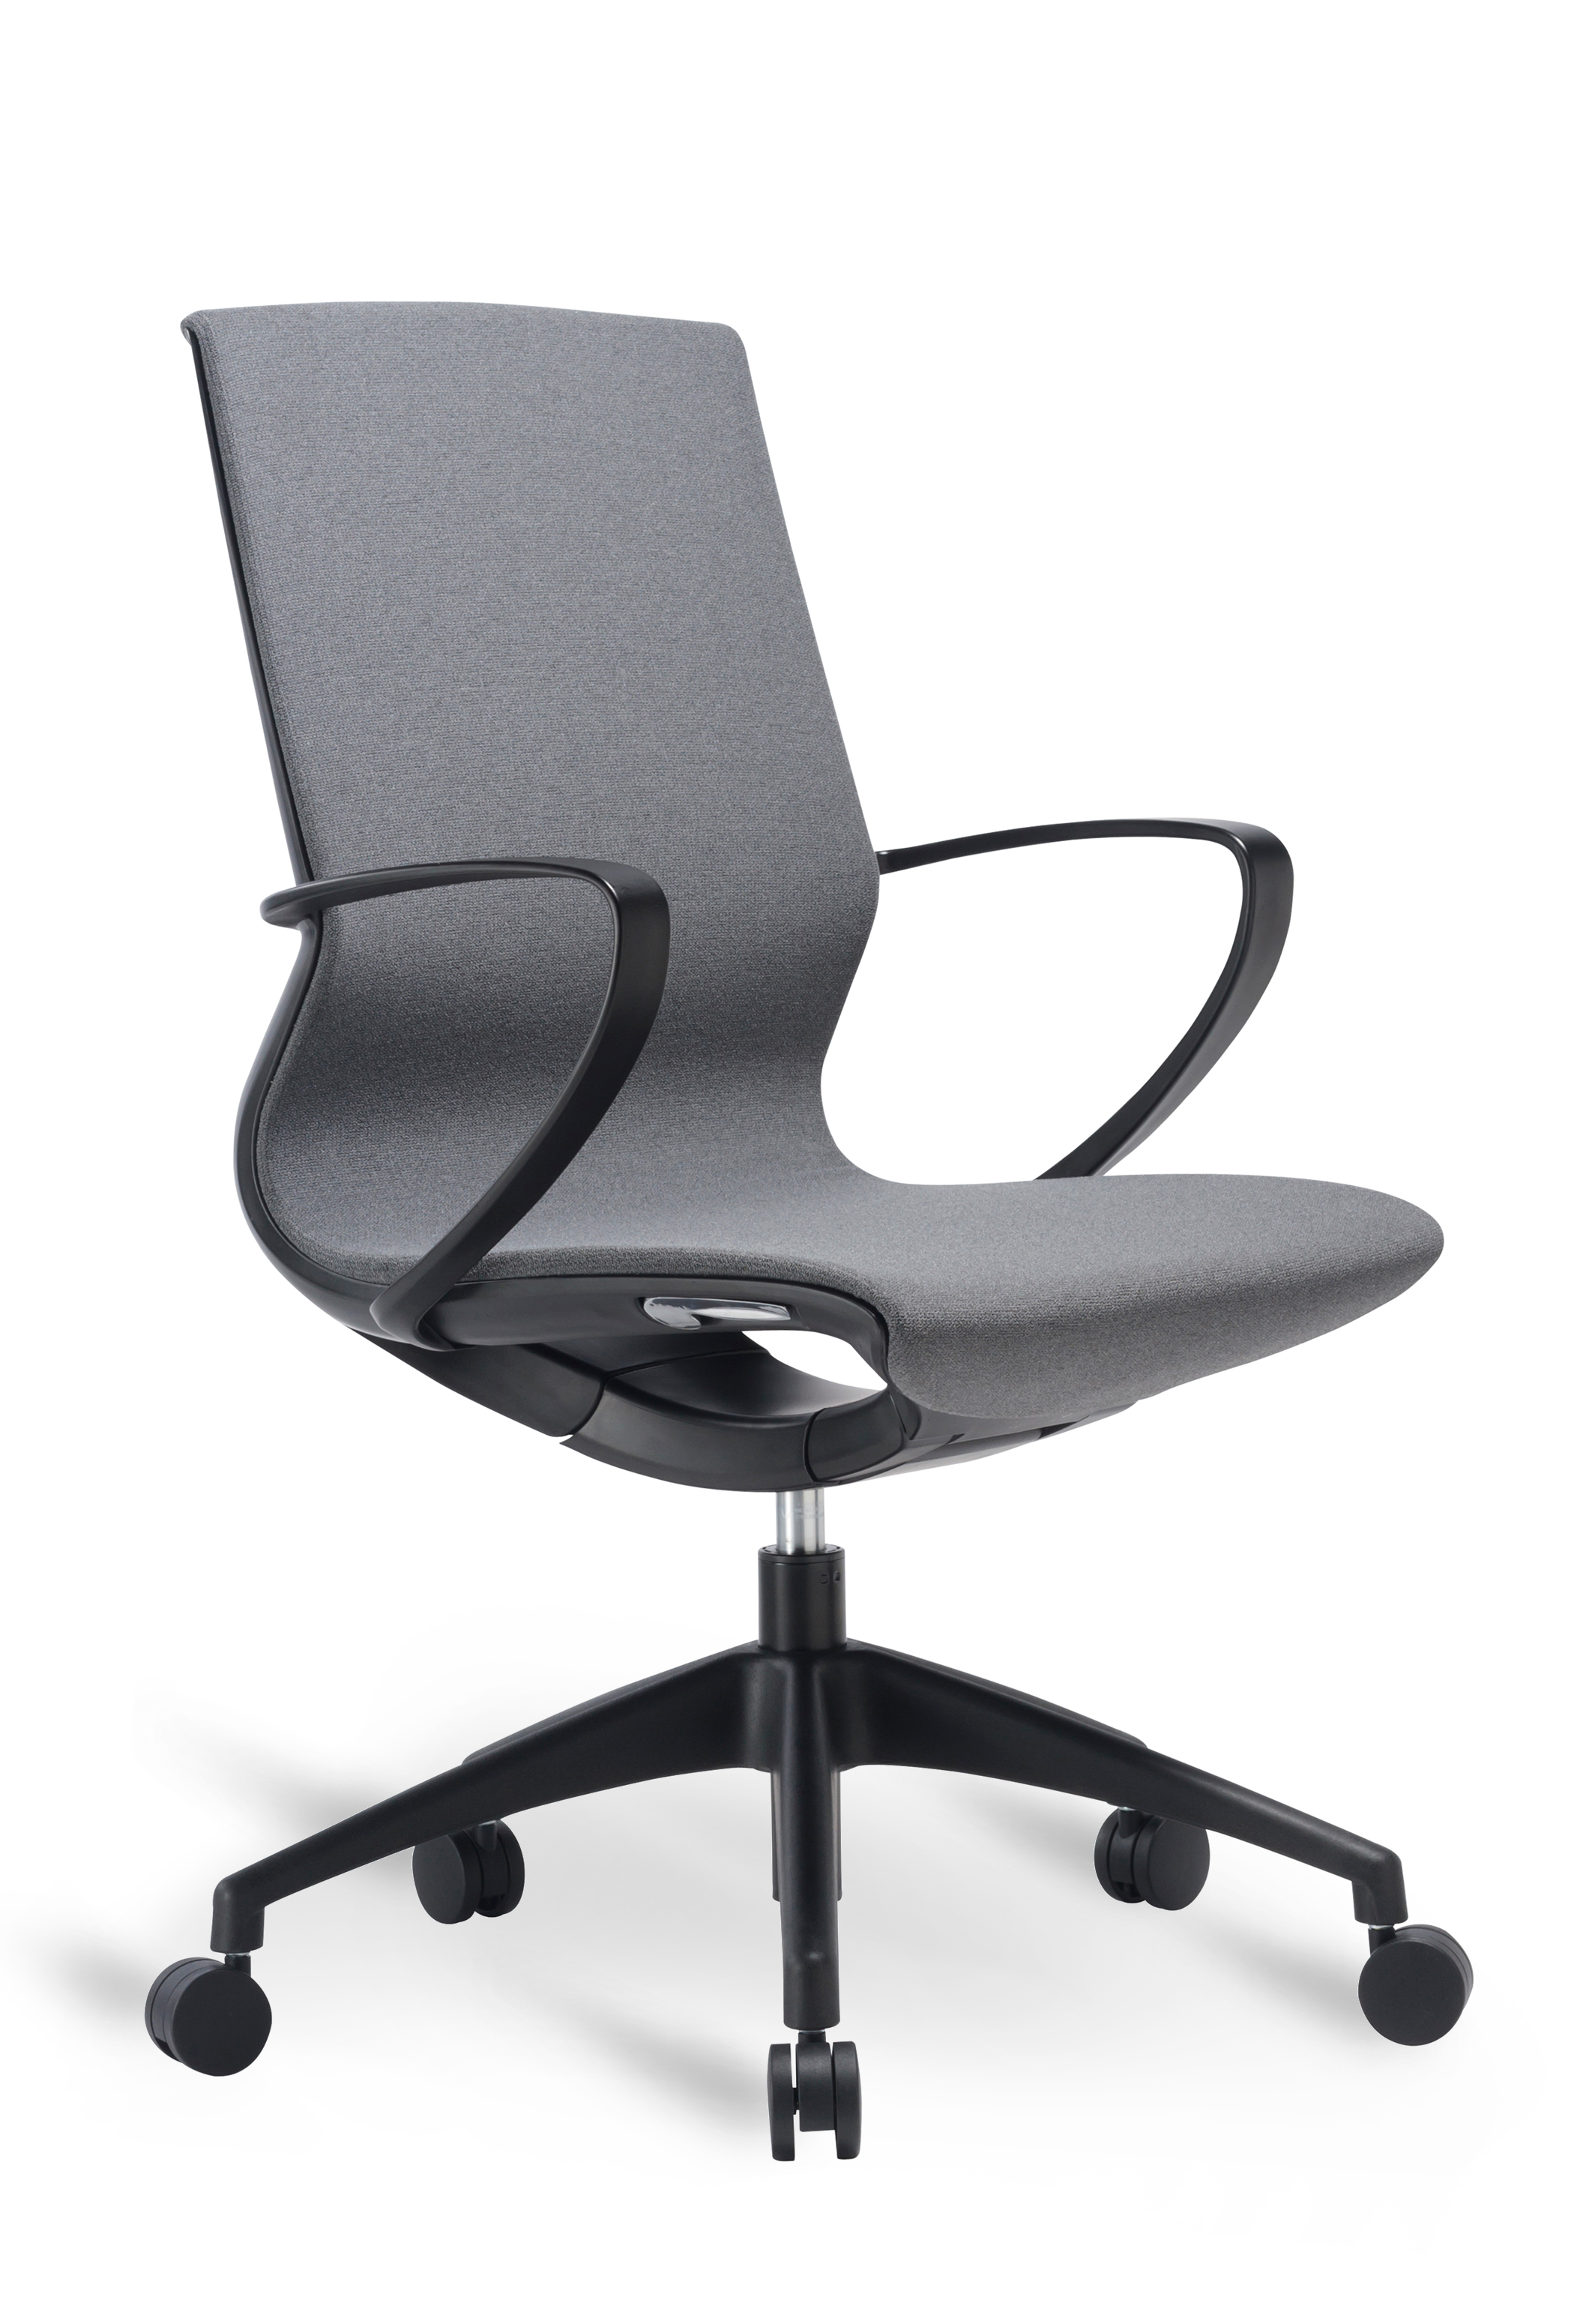 WS - L19 multipurpose chair - Dark grey (Front angle)